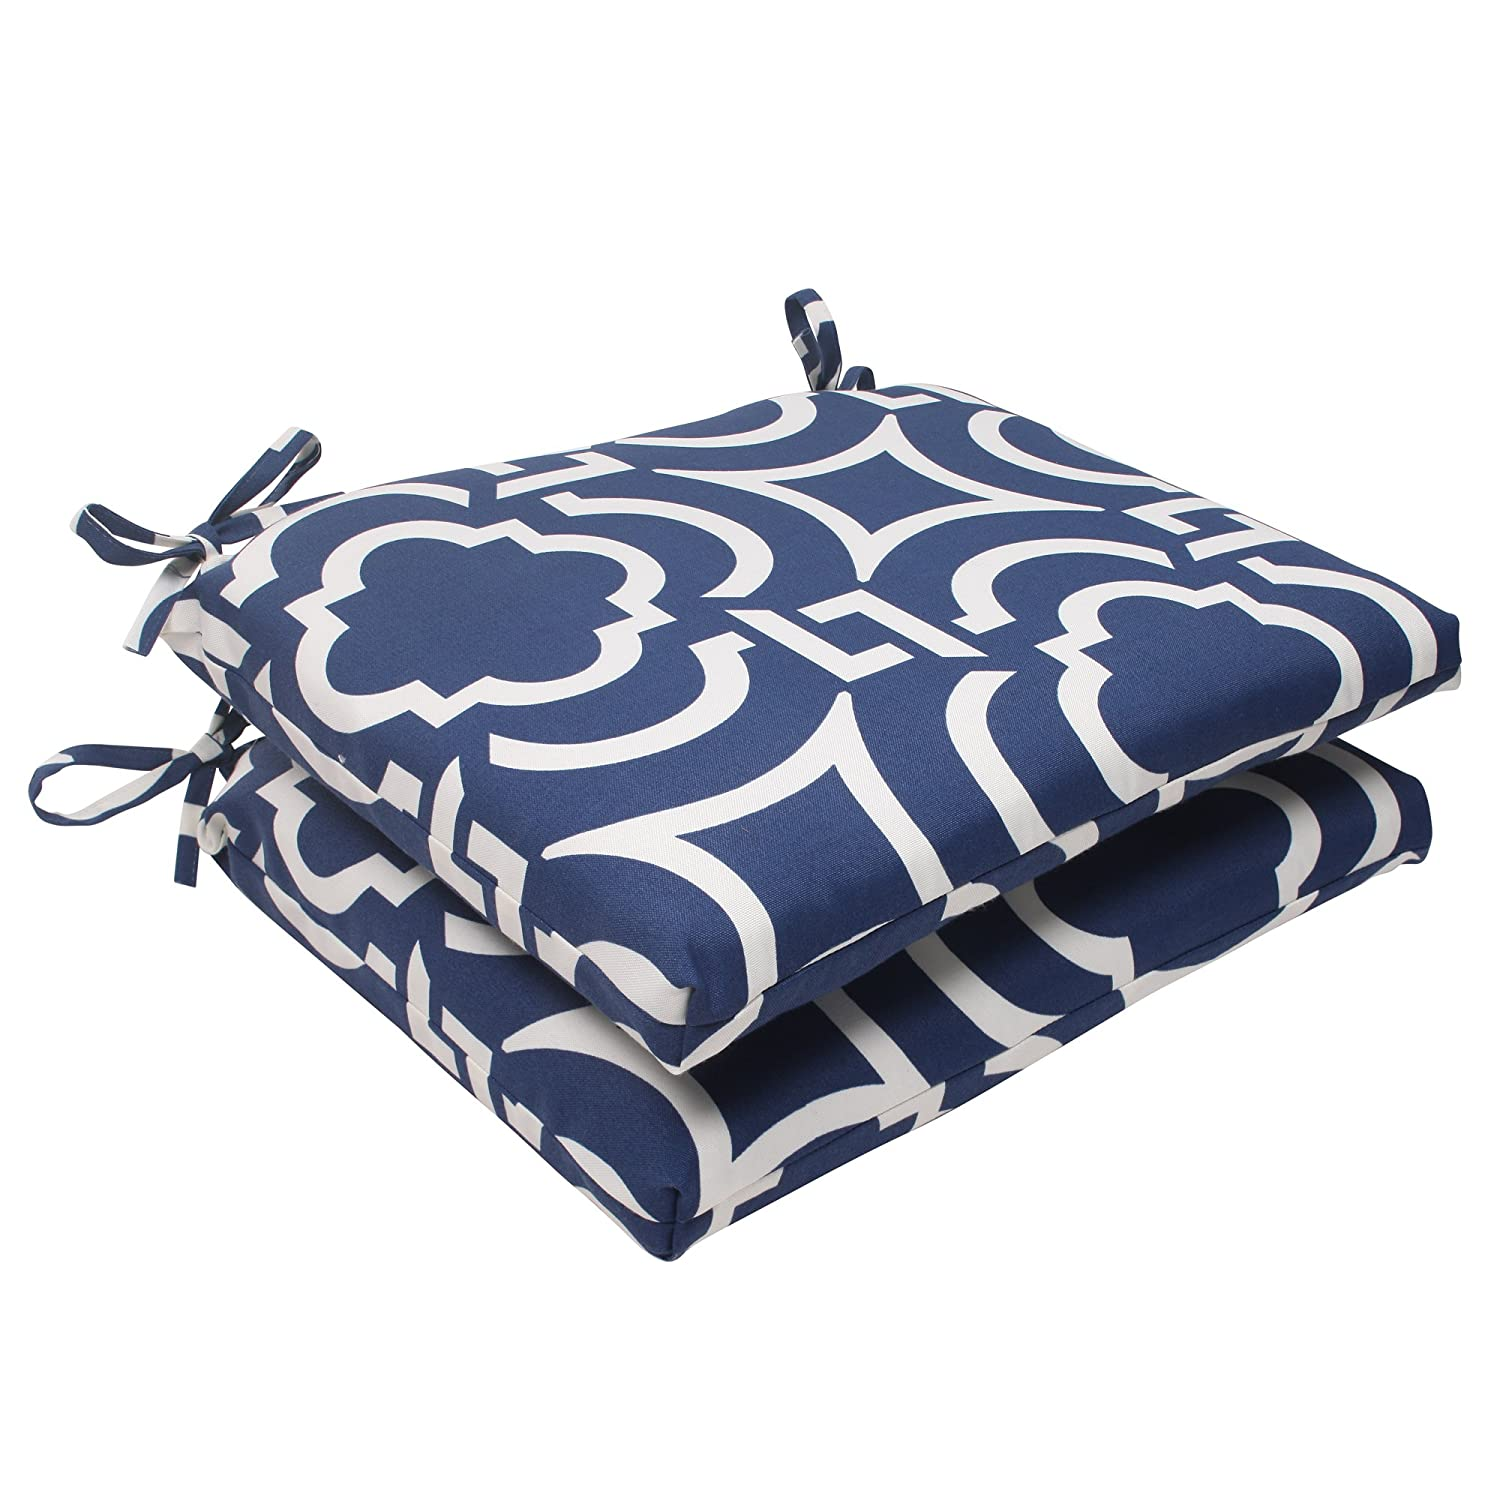 Pillow Perfect Indoor/Outdoor Carmody Squared Seat Cushion, Navy, Set of 2